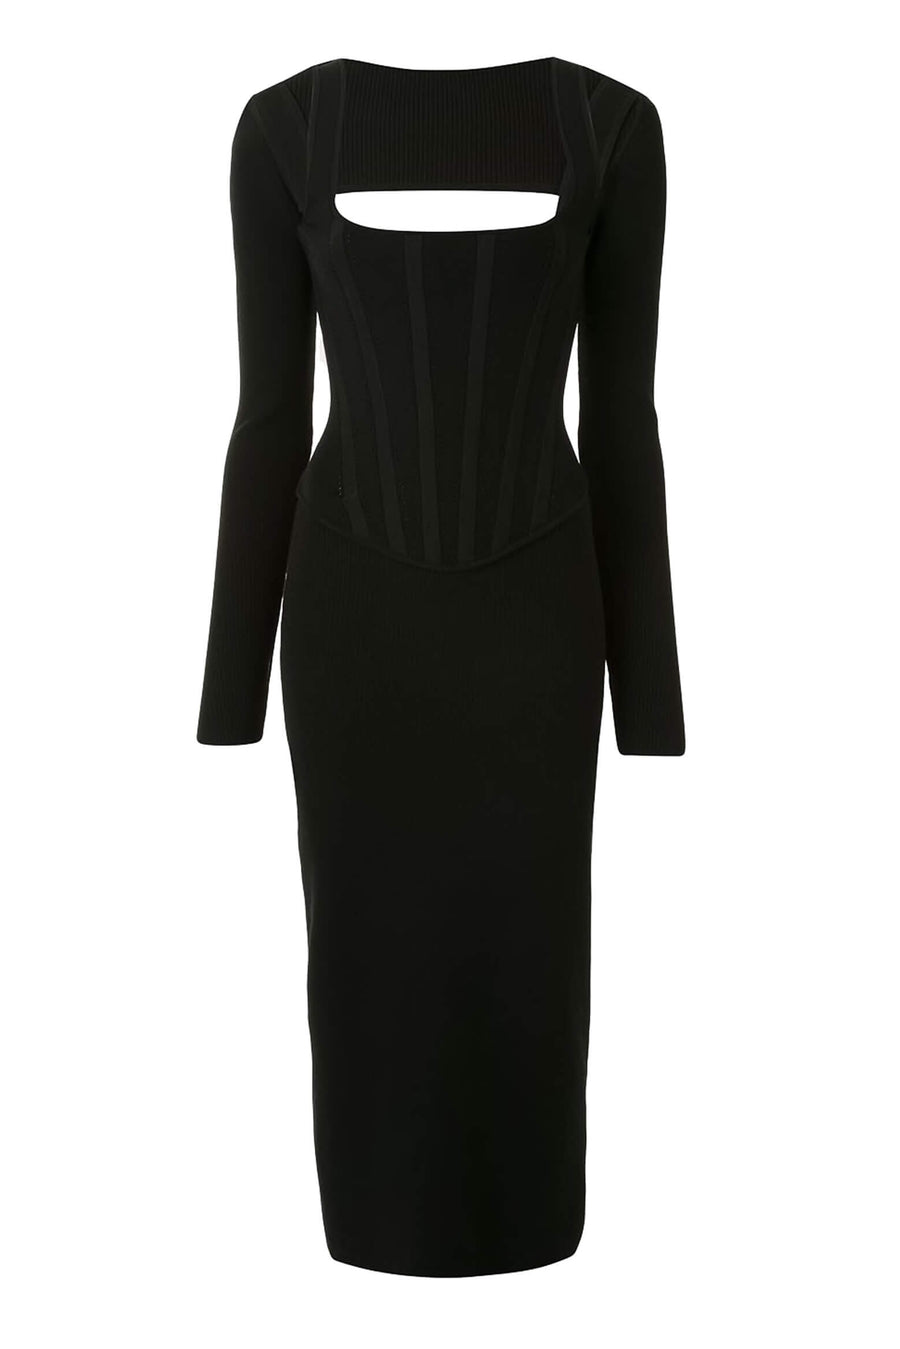 Dion Lee Pointelle Corset Dress in Black from The New Trend